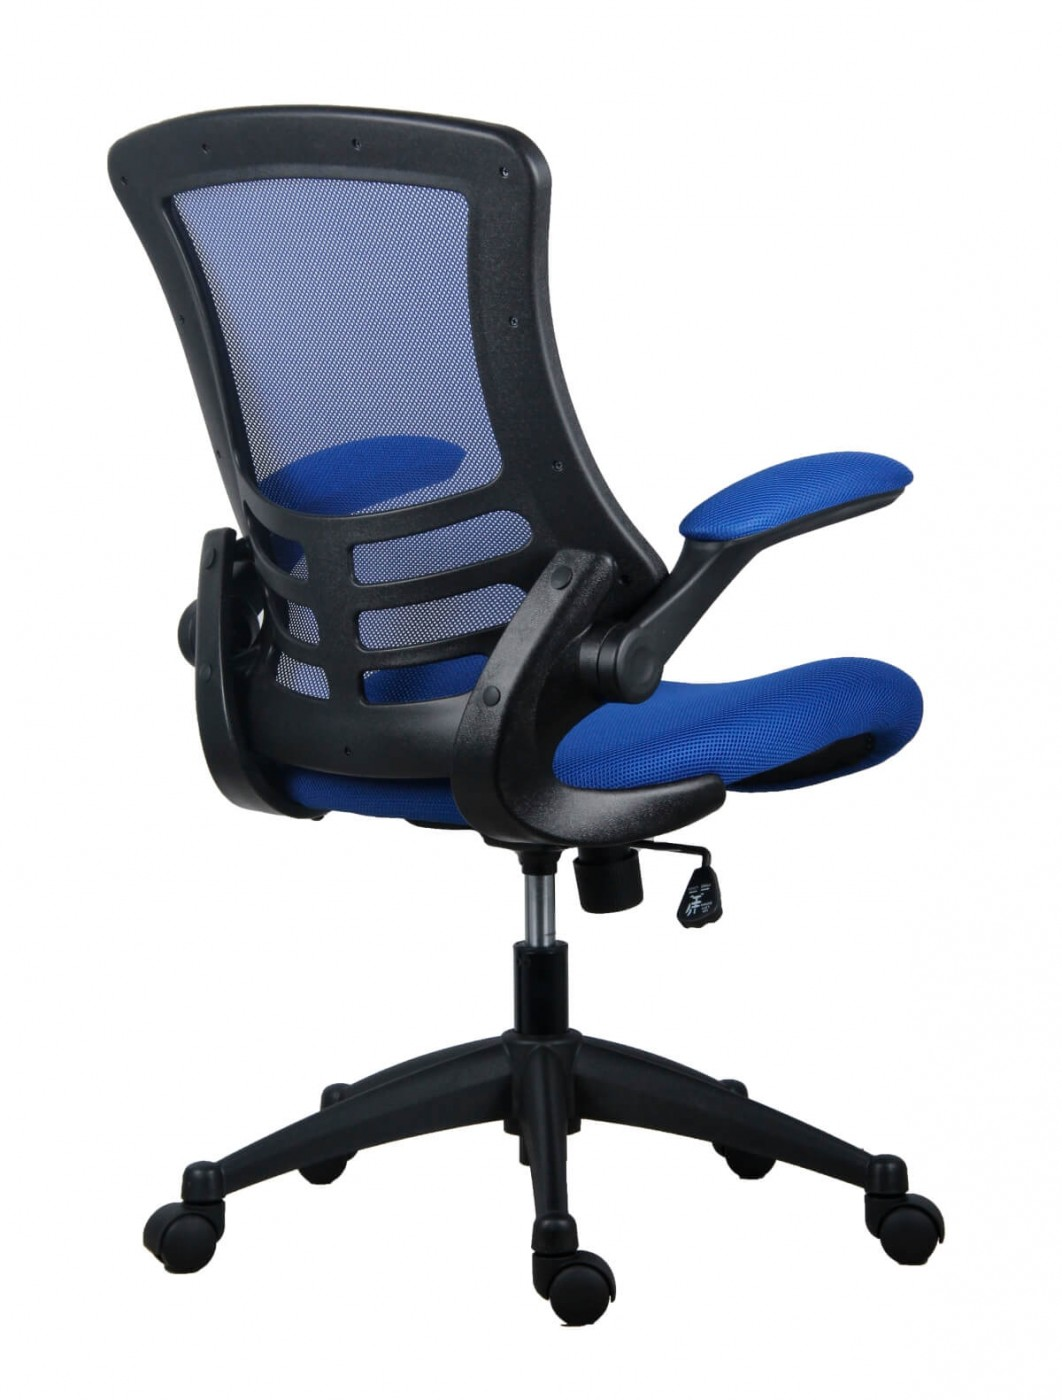 Office Chairs - Marlos Mesh Office Chair in Blue CH0790BL ...